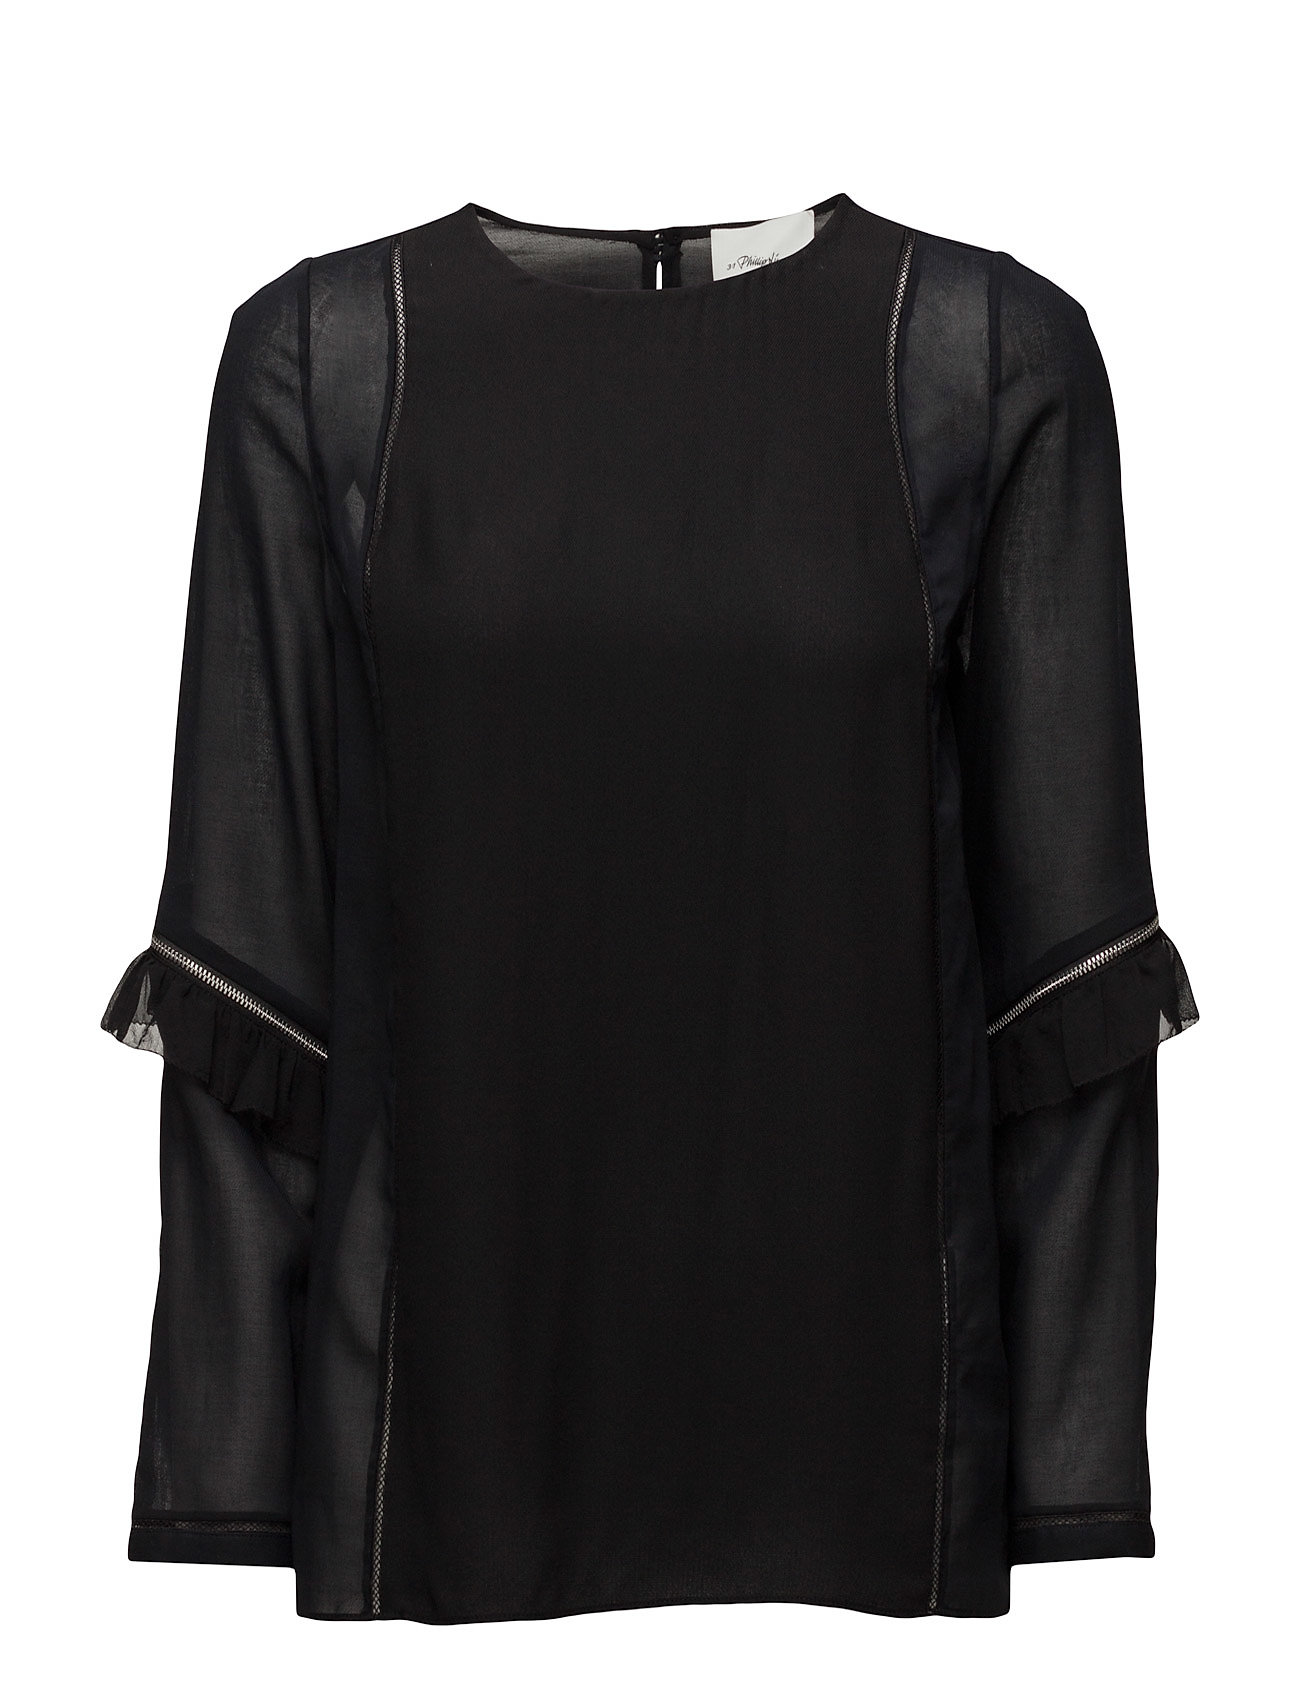 Ls top w ruffle and zip sleeve detail fra 3.1 phillip lim på boozt.com dk